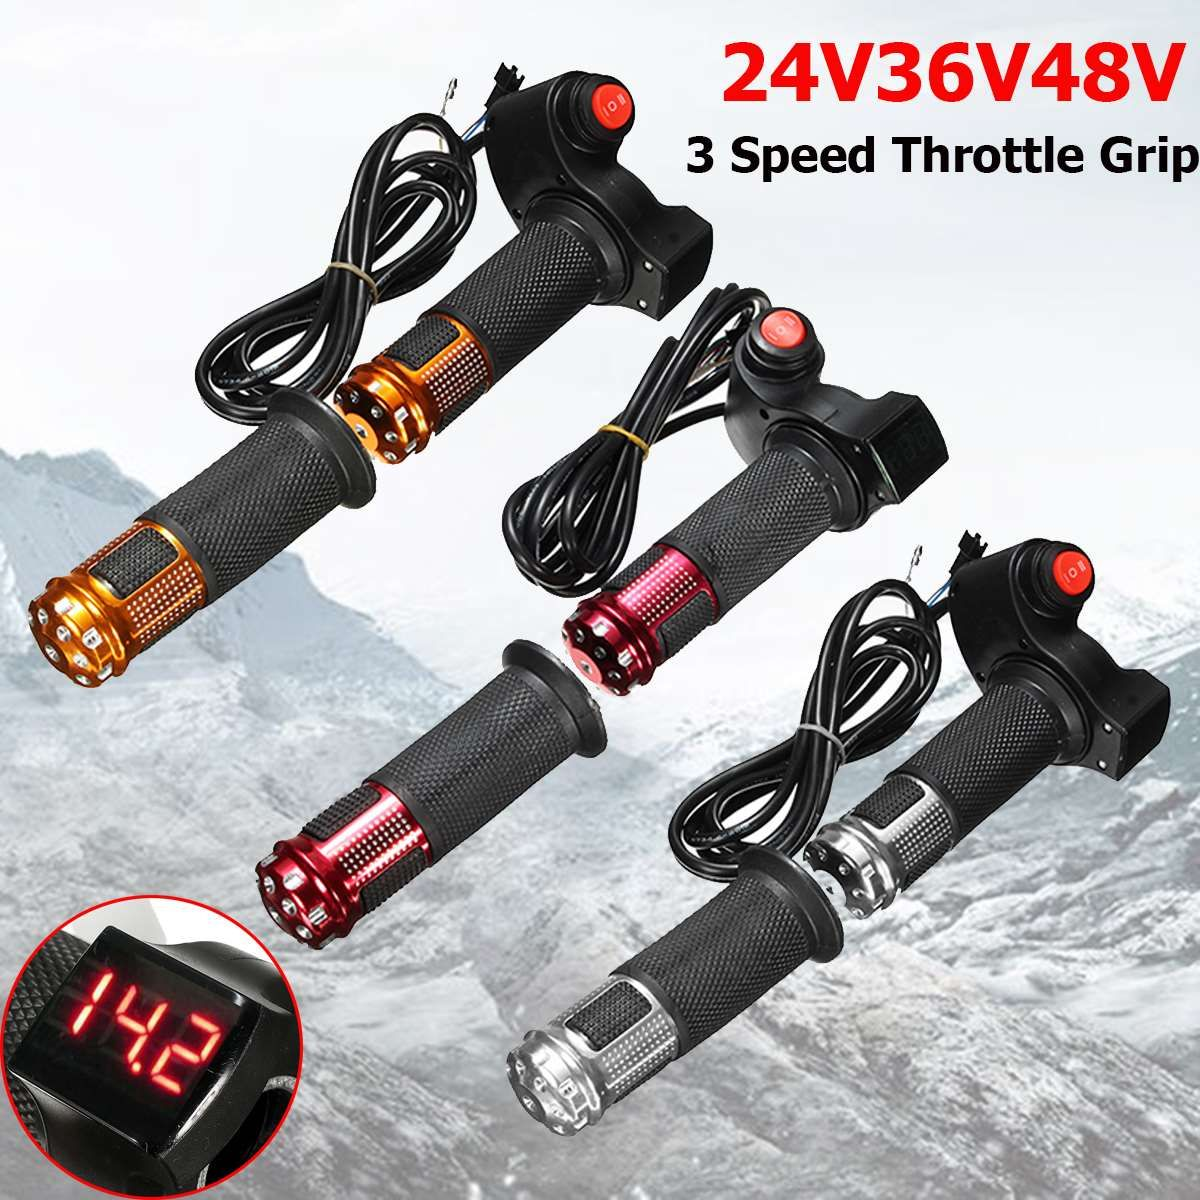 EBike Scooter Electric Throttle Grip Handlebar 24V 36V 48V 60v LED Digital Meter 3 Speed 2 PCS